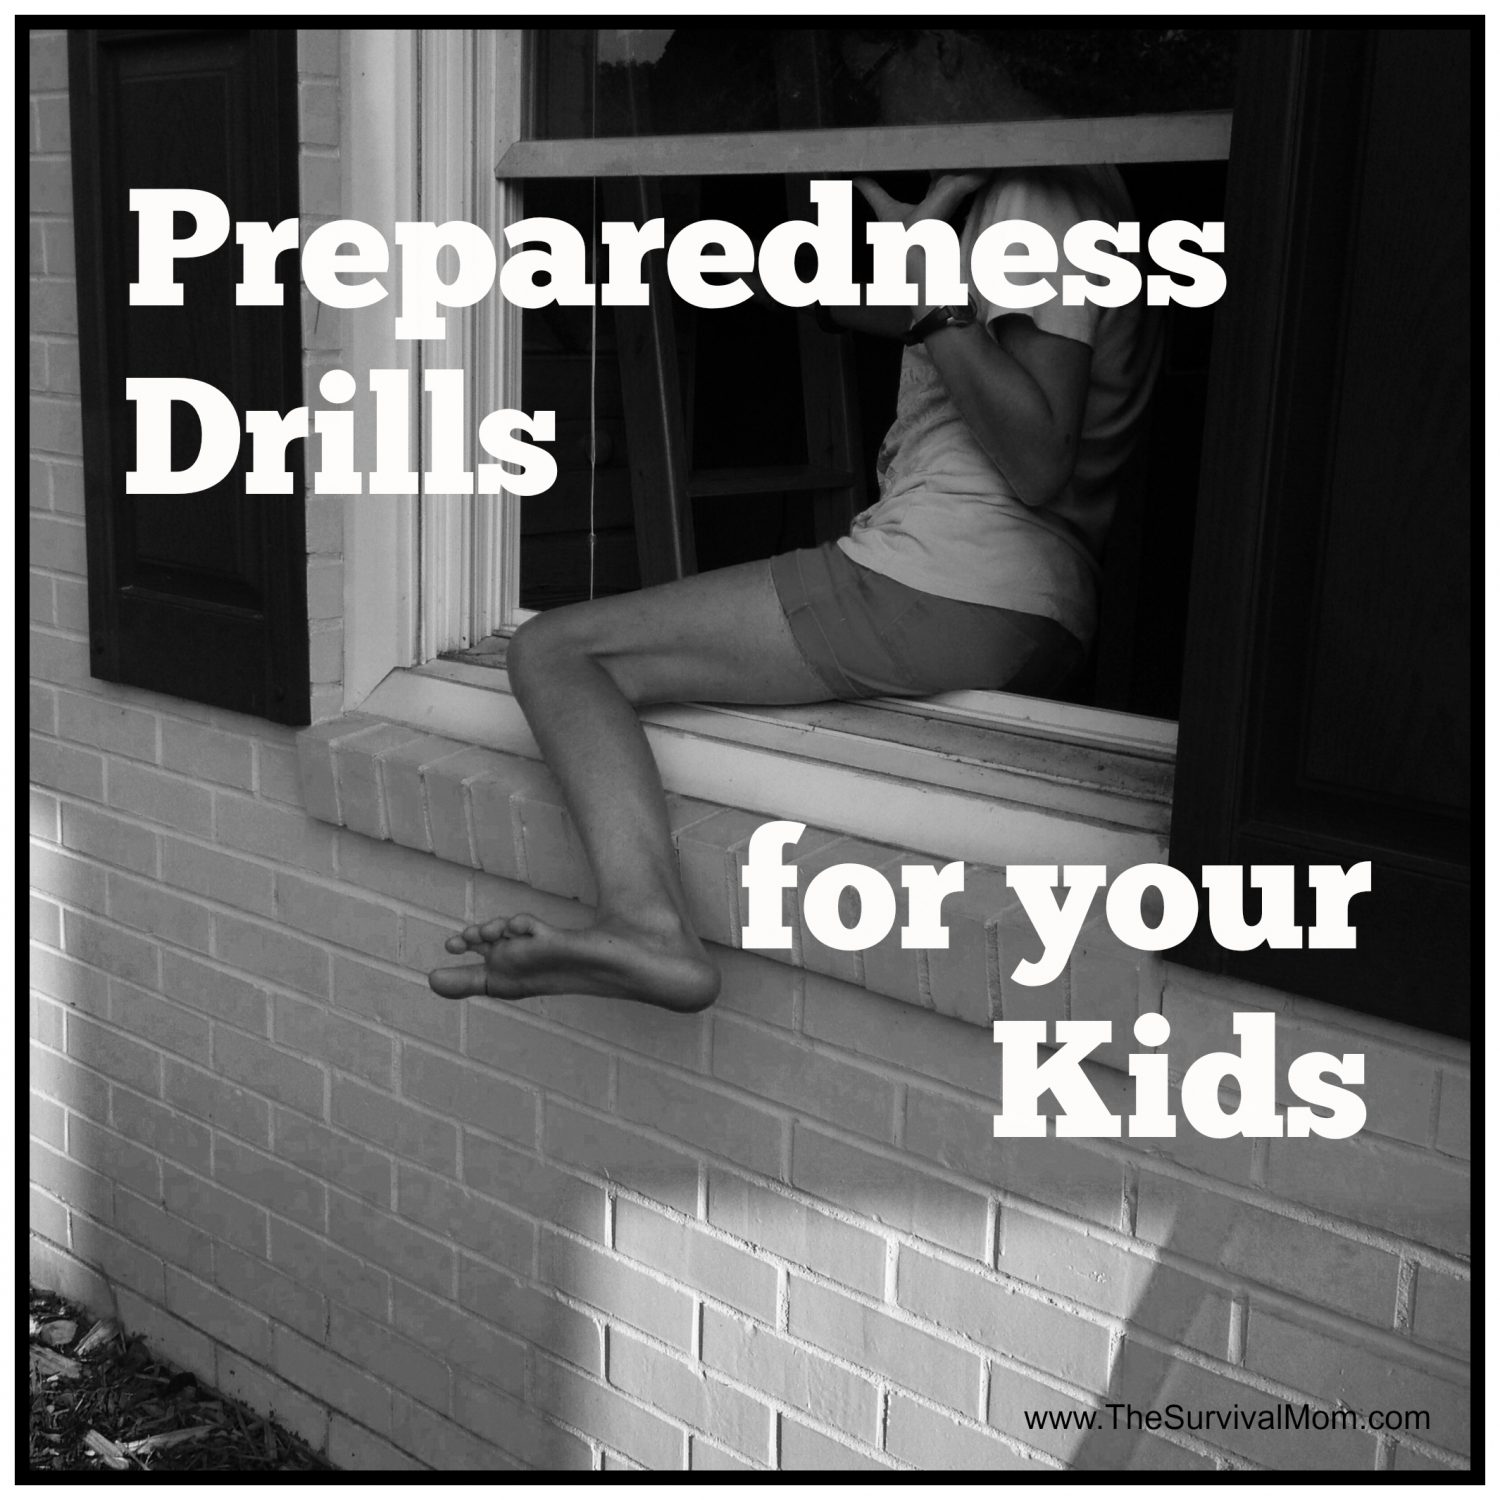 Preparedness Drills, survival skills for kids, fire drills, emergency drills